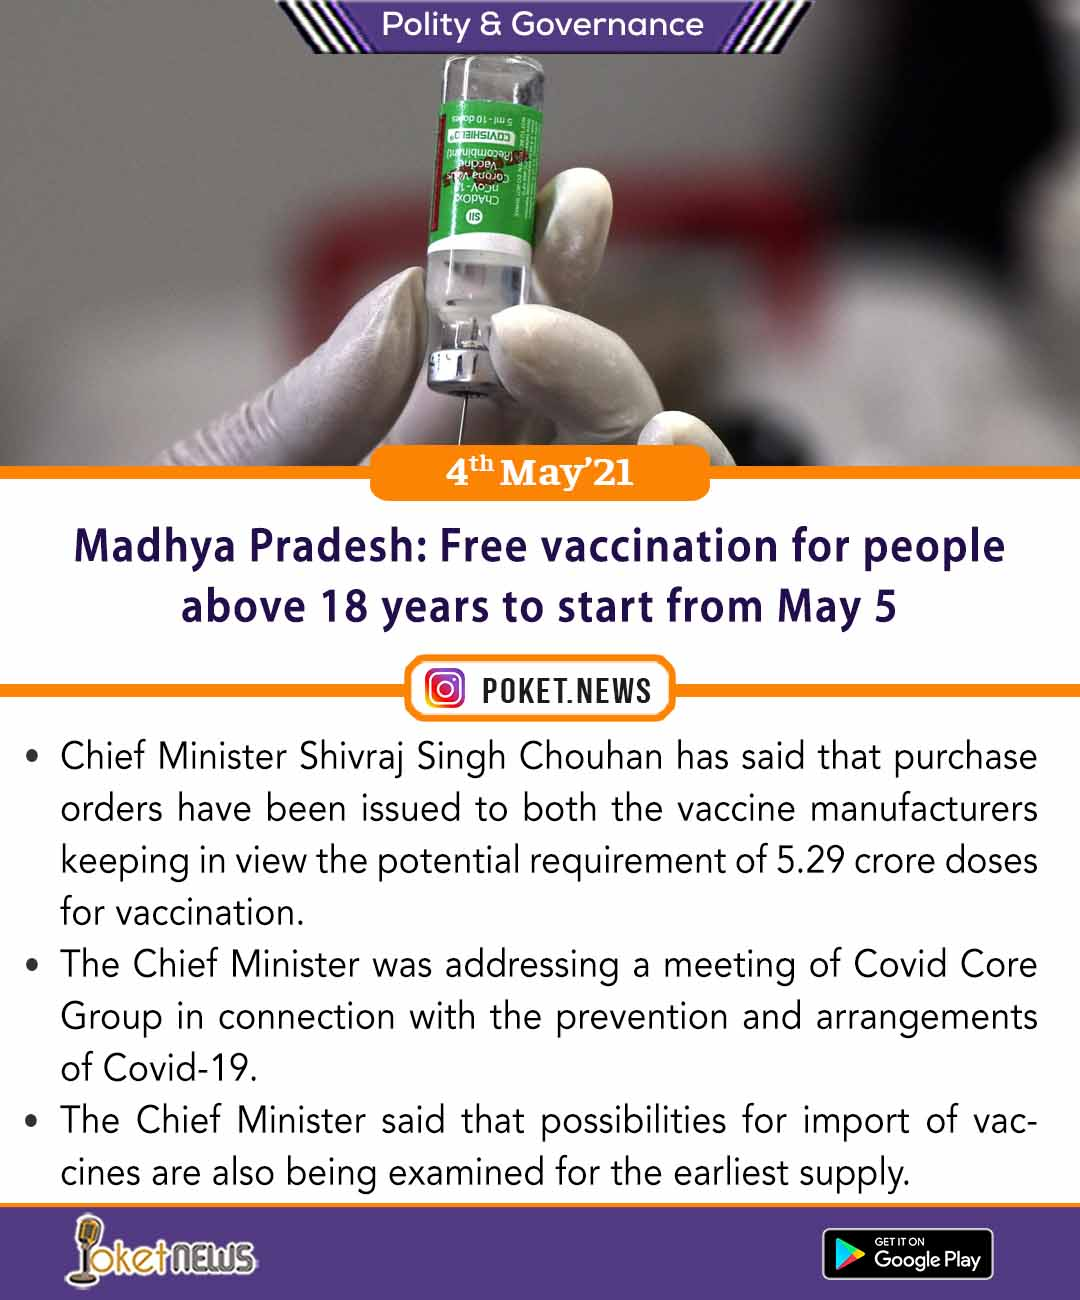 Madhya Pradesh: Free vaccination for people above 18 years to start from May 5